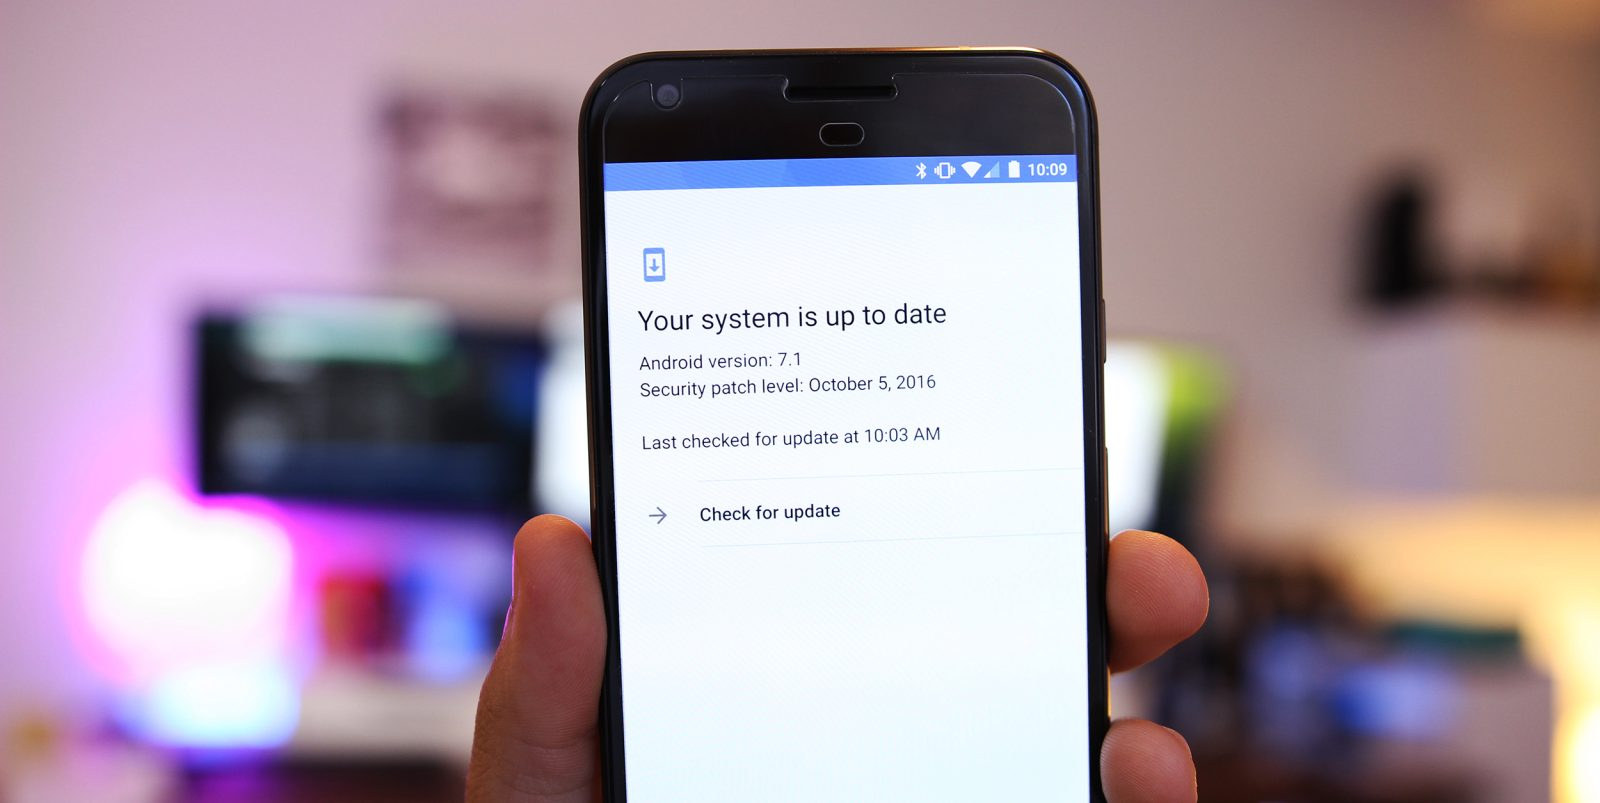 Nokia 6 Set For Android 7.1.1 Update